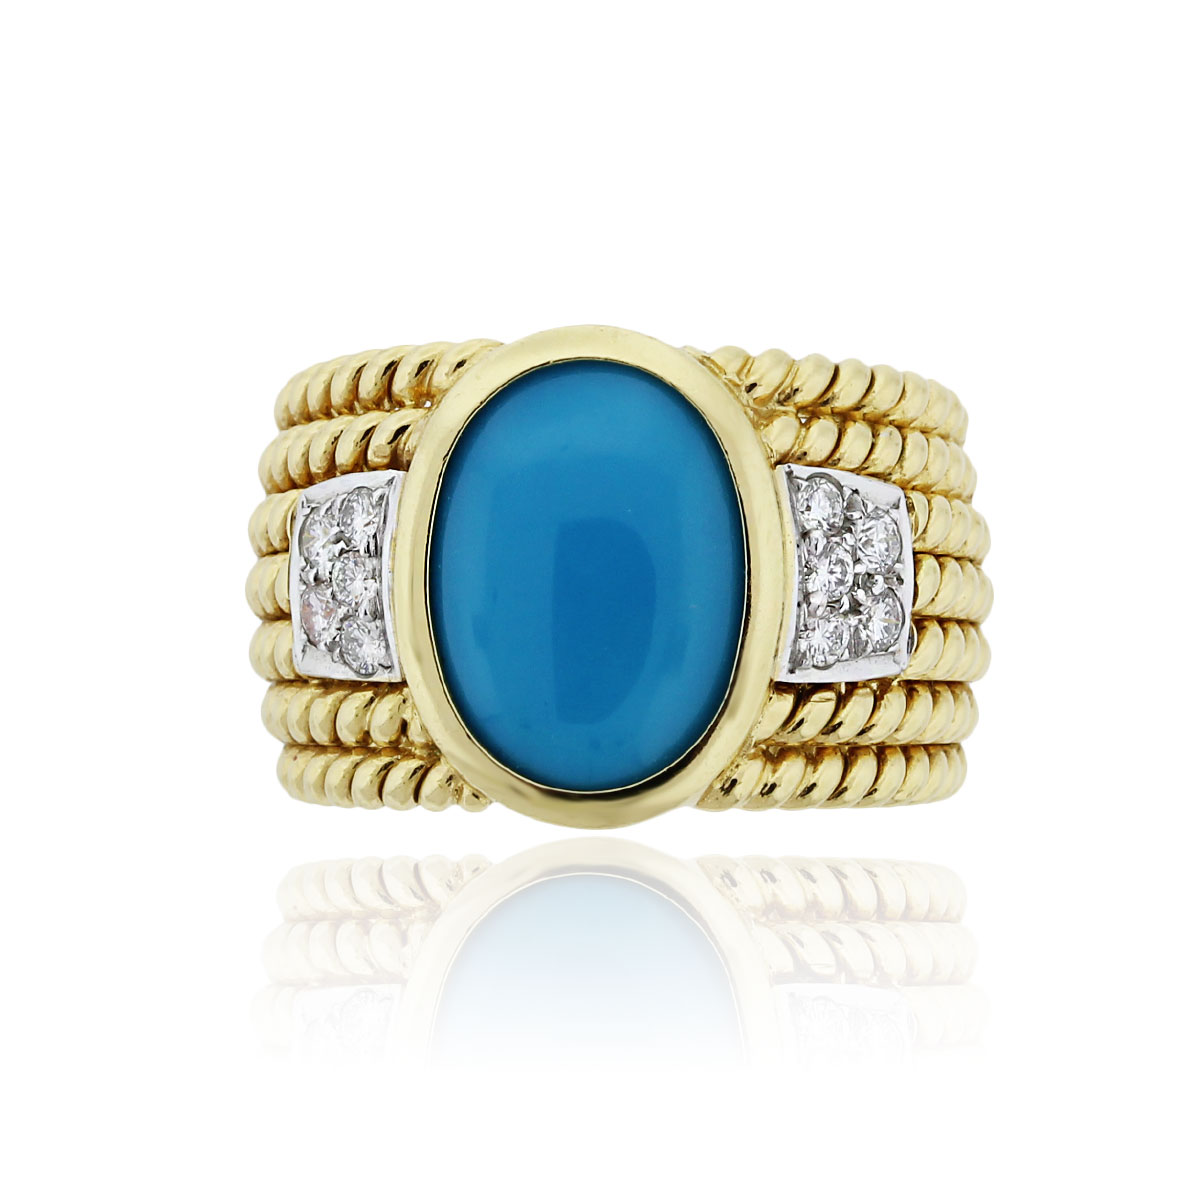 You are viewing this 18k Yellow Gold Turquoise .30ctw Diamond Cocktail Ring!